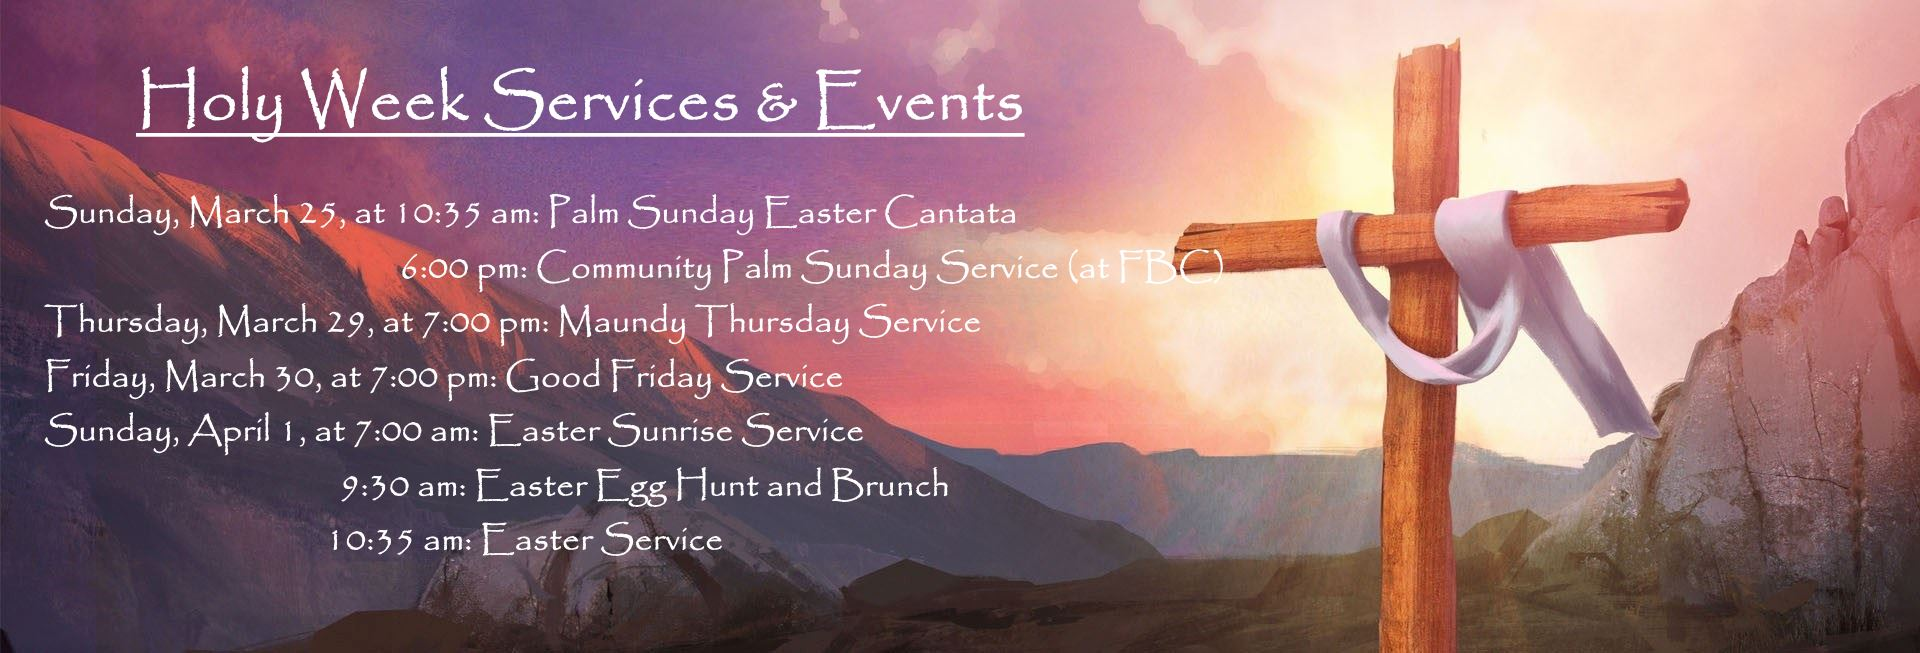 2018 Holy Week Worship Services and Events